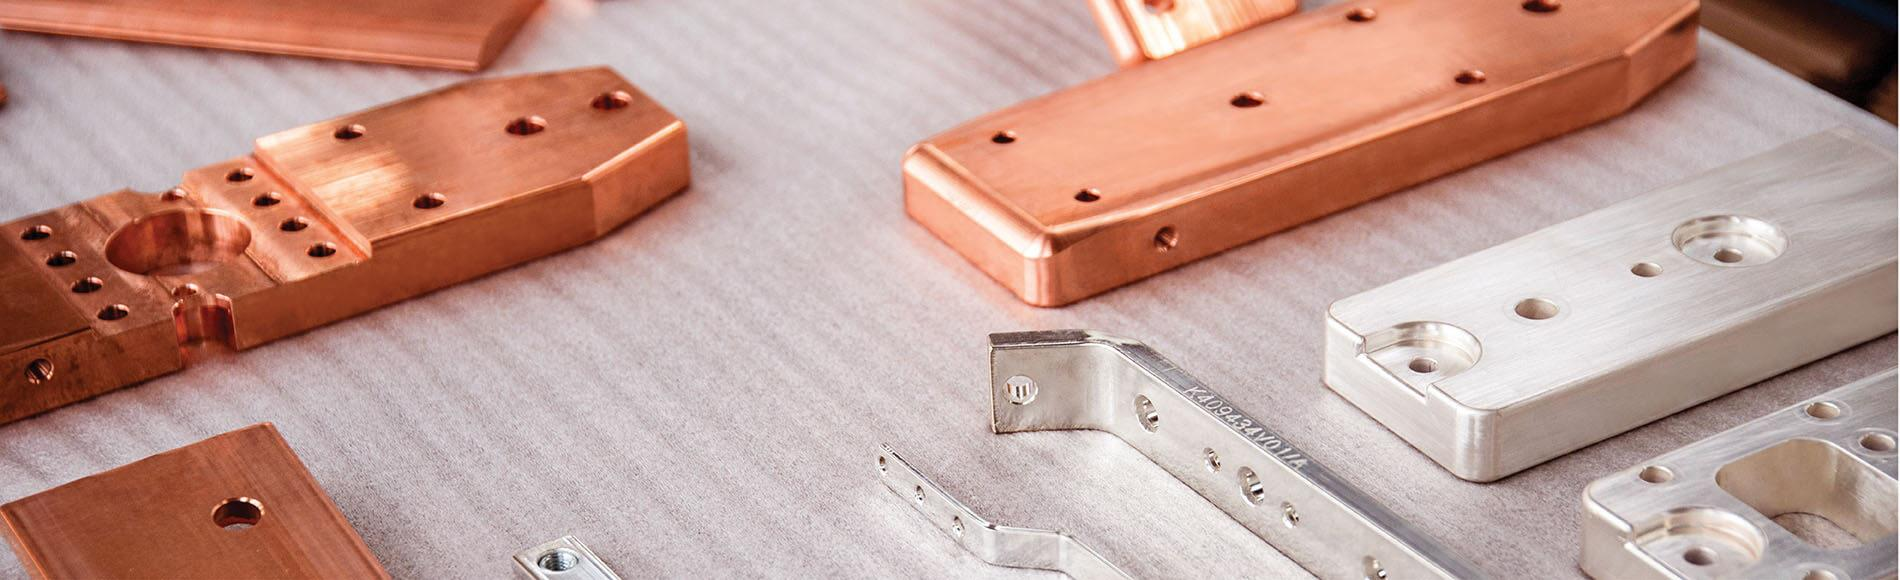 http://www.fitco.gr/userfiles/45aad4a2-7fba-4093-8a2a-a6de00bc5a0a/01_03-productscopper-extrusioncopper-fittings-and-profiles_master photo.jpg?quality=75&w=1900